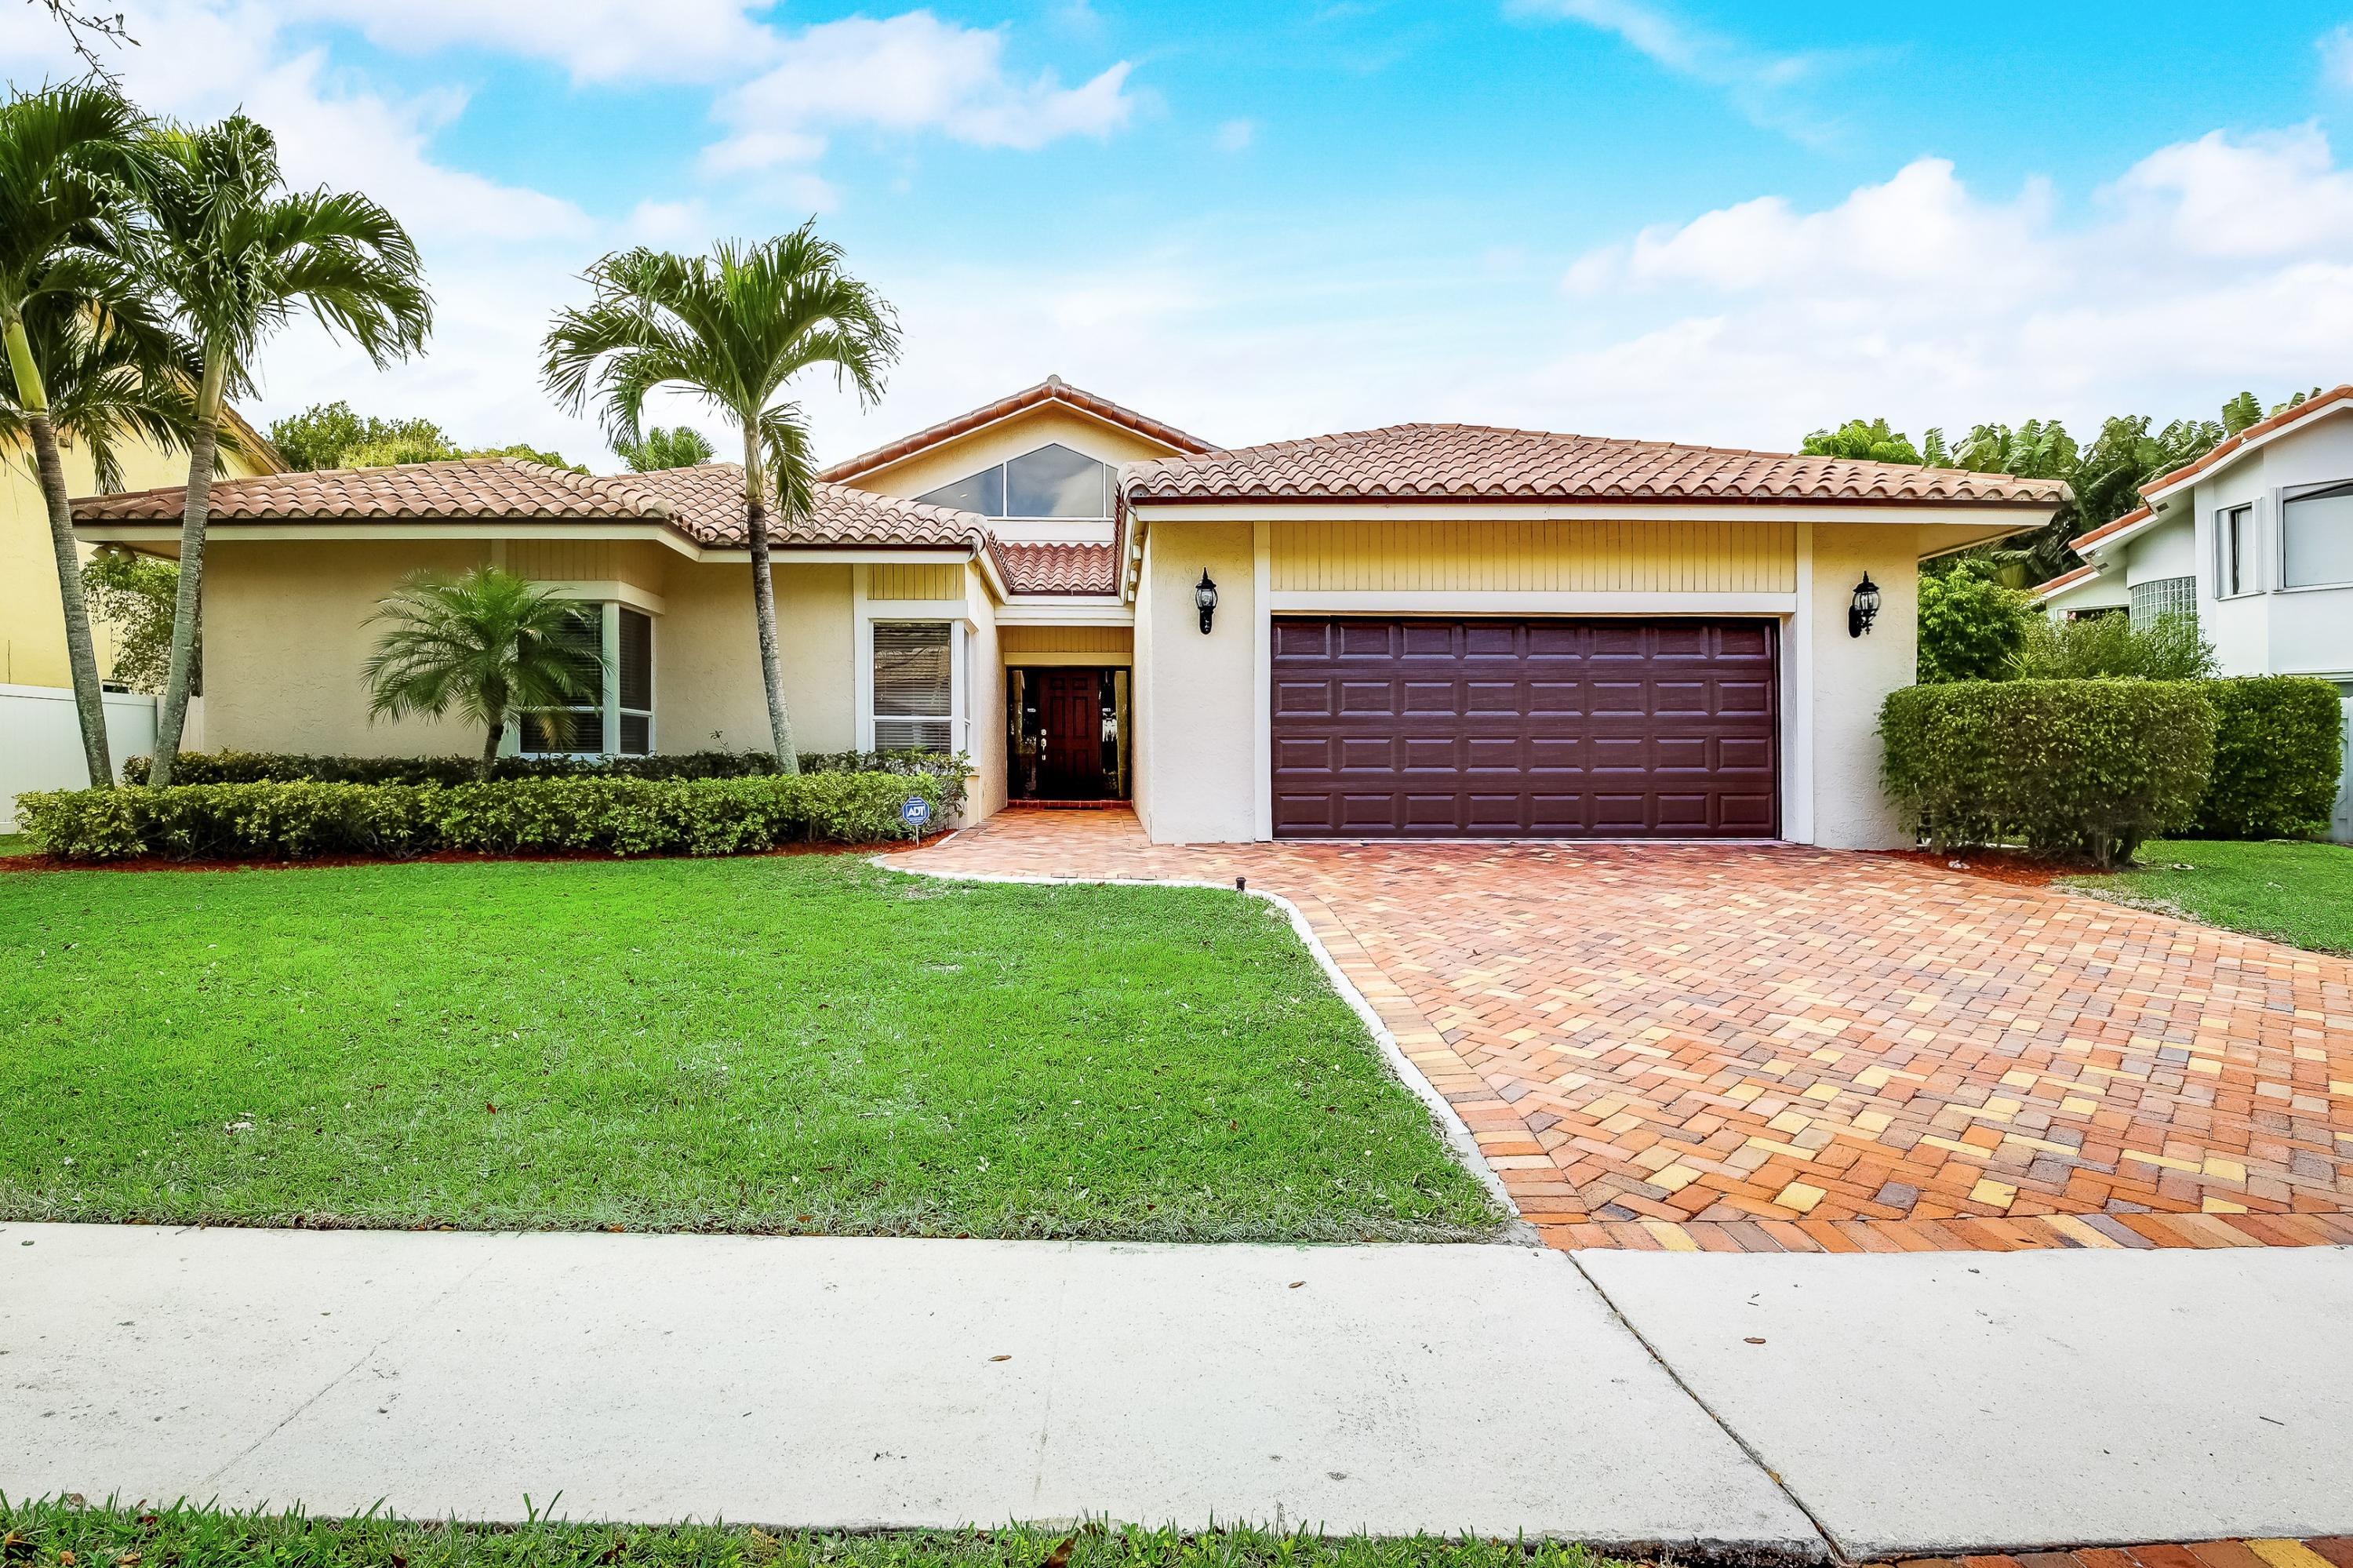 Photo of 4199 NW 28th Way, Boca Raton, FL 33434